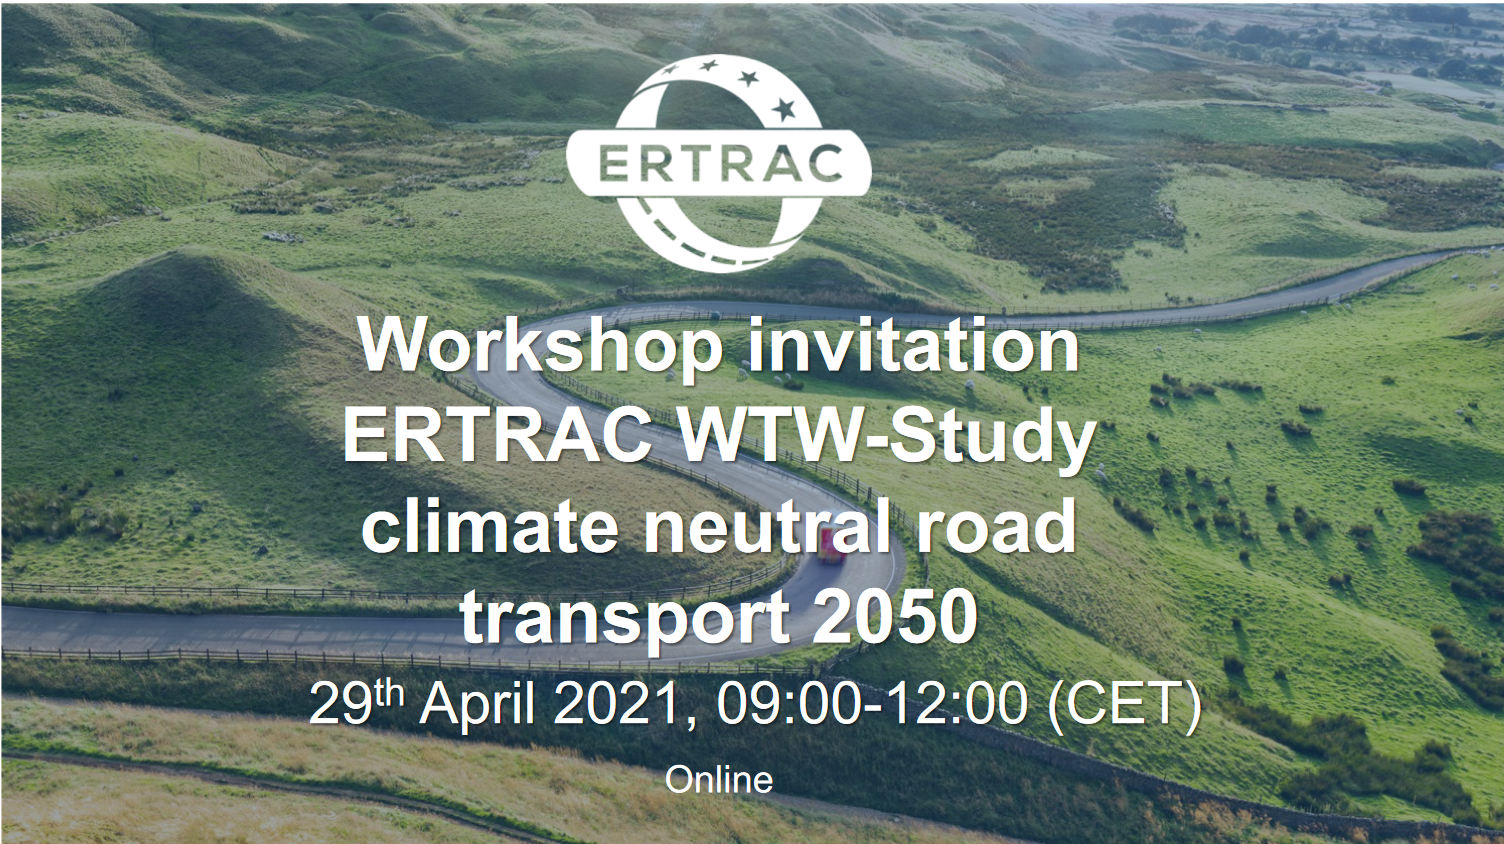 ERTRAC workshop on climate-neutral road transport by 2050